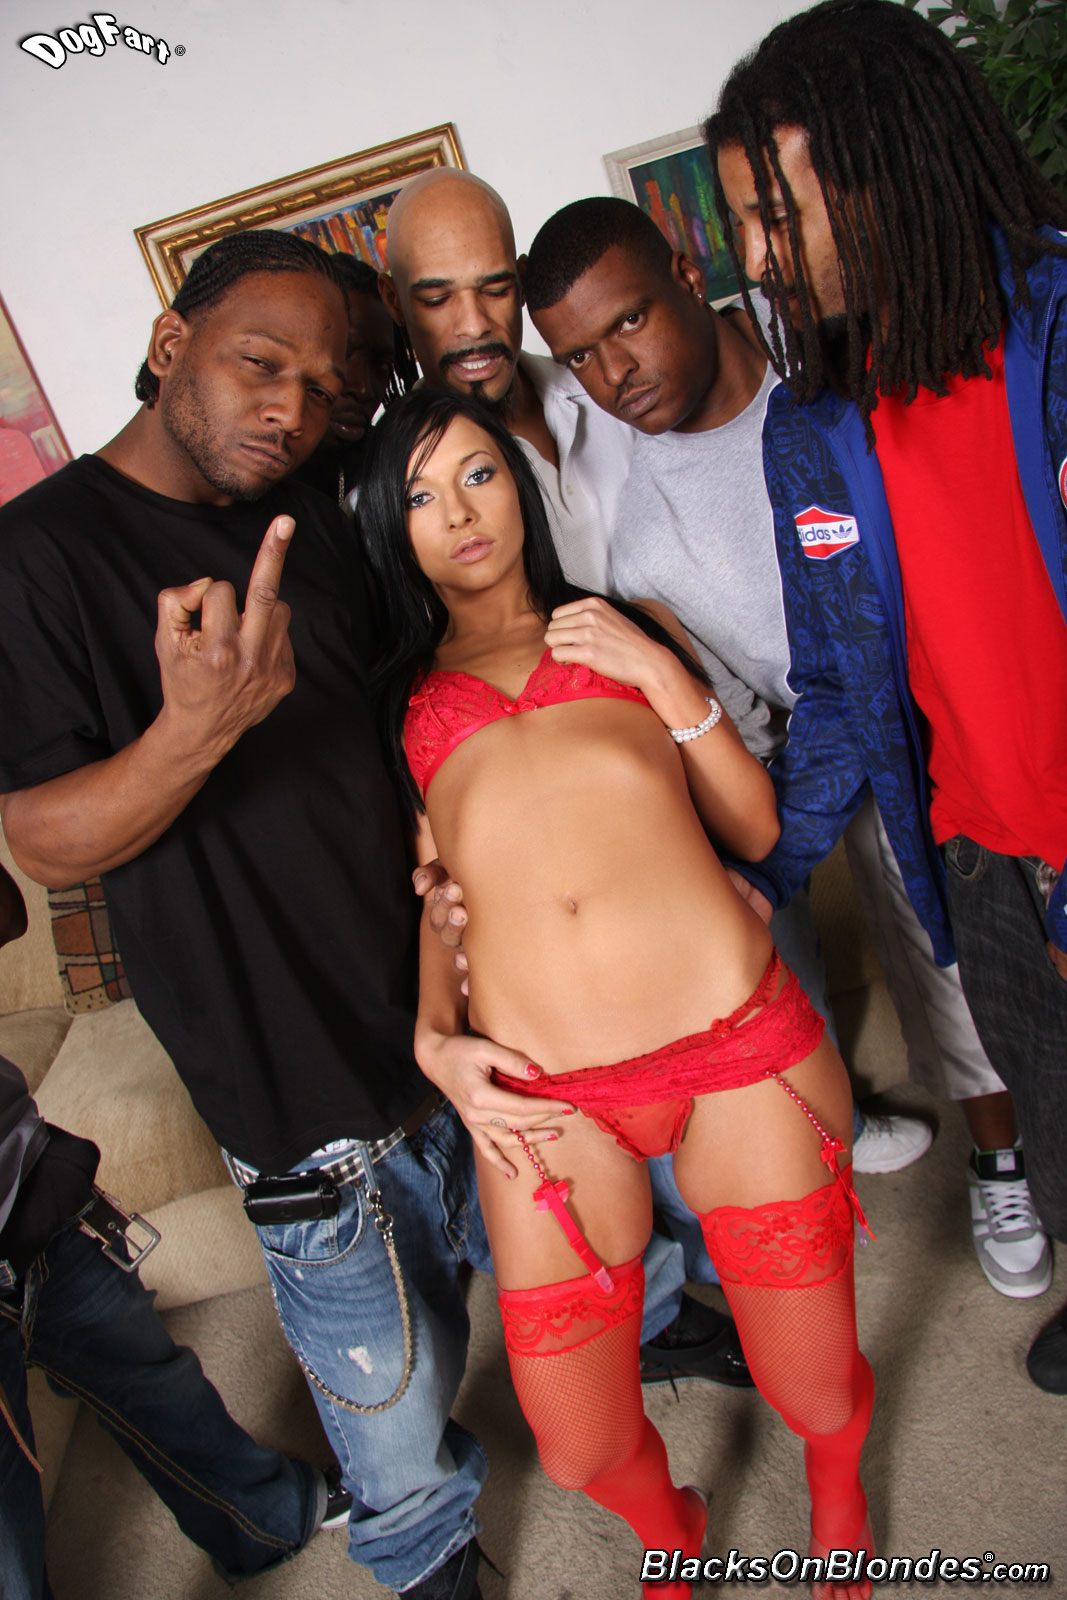 Dp and cumeating orgy 10